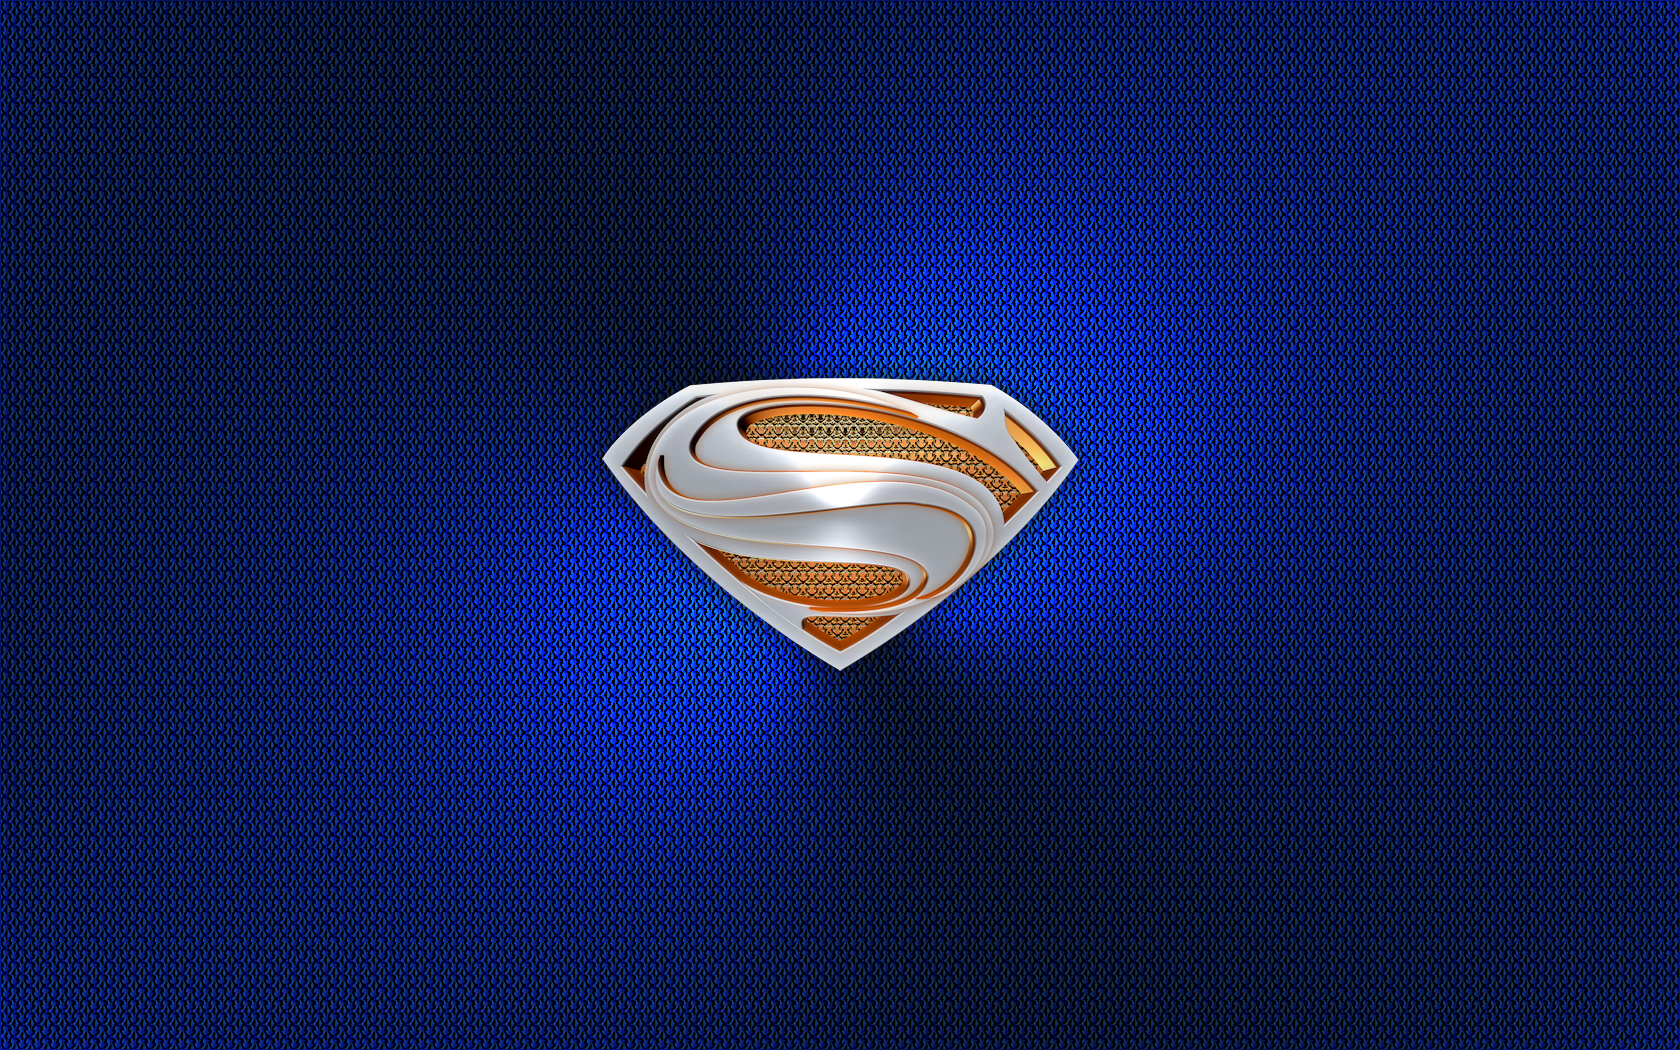 Superman Man Of Steel 3D Emblem Wall 02A By KingTracy